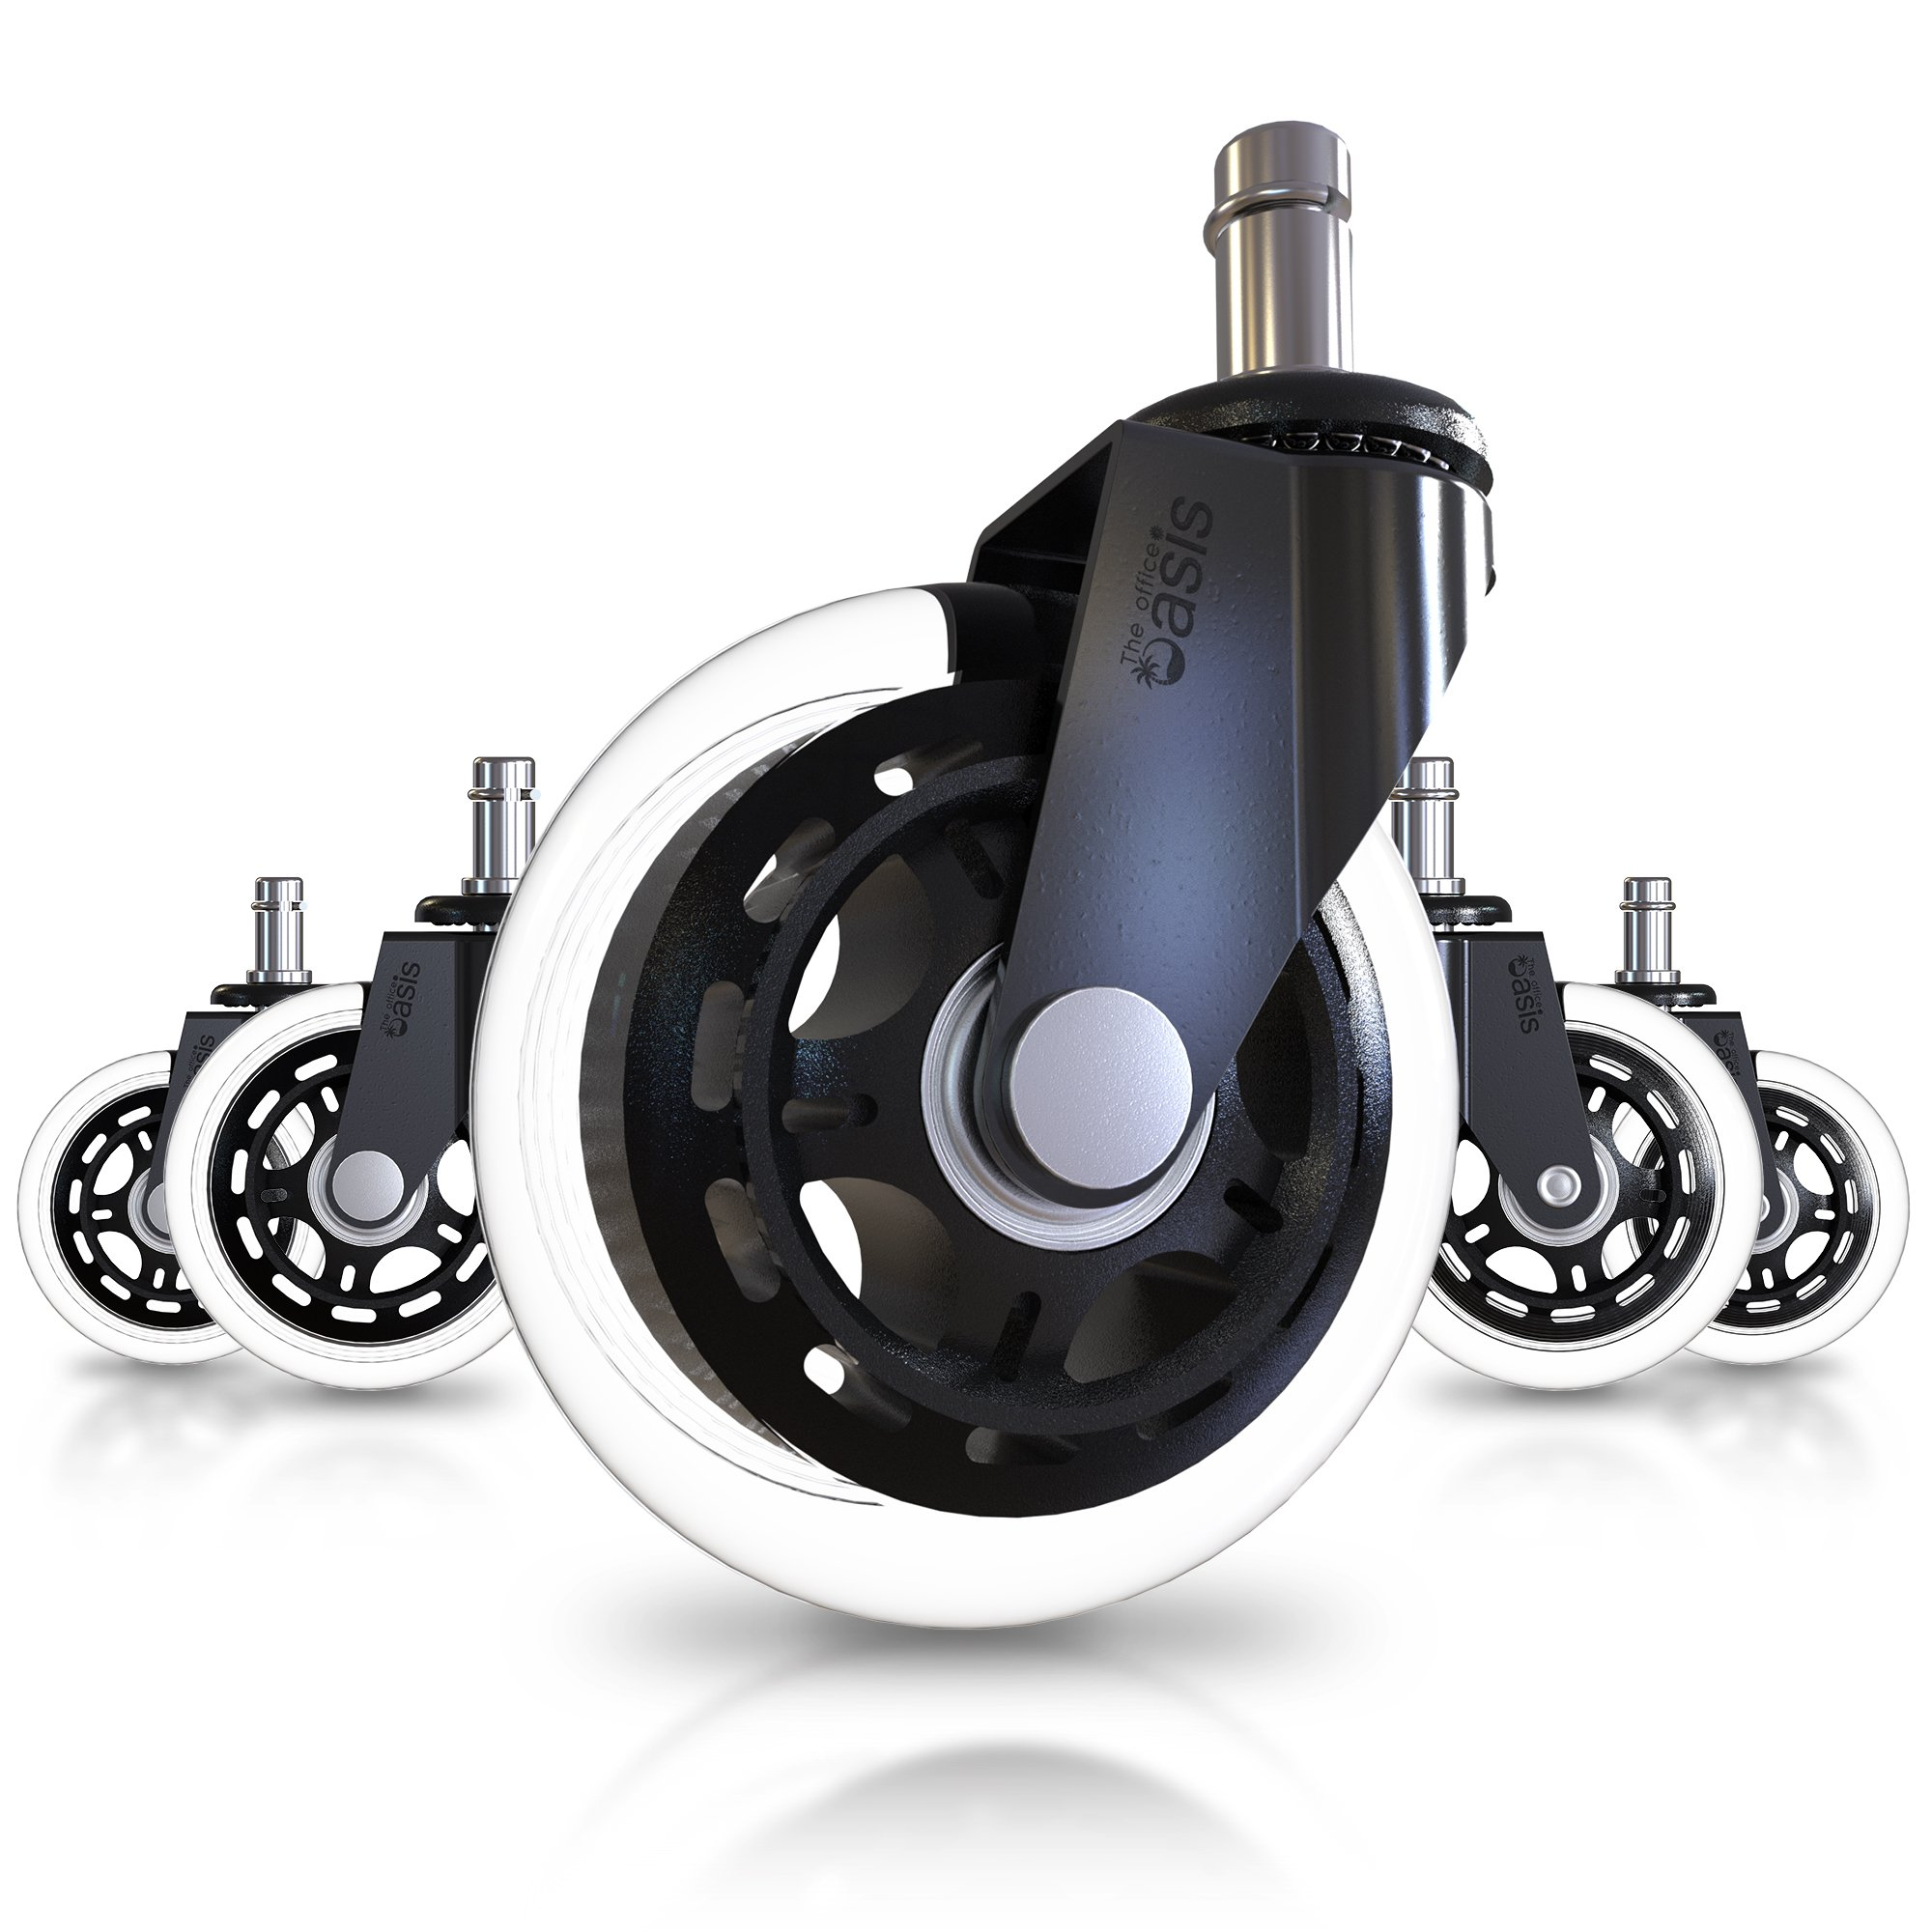 Office Chair Caster Wheels (Set of 5) - Heavy Duty & Safe for All Floors Including Hardwood - Perfect Replacement for Desk Floor Mat - Rollerblade Style w/Universal Fit by The Office Oasis